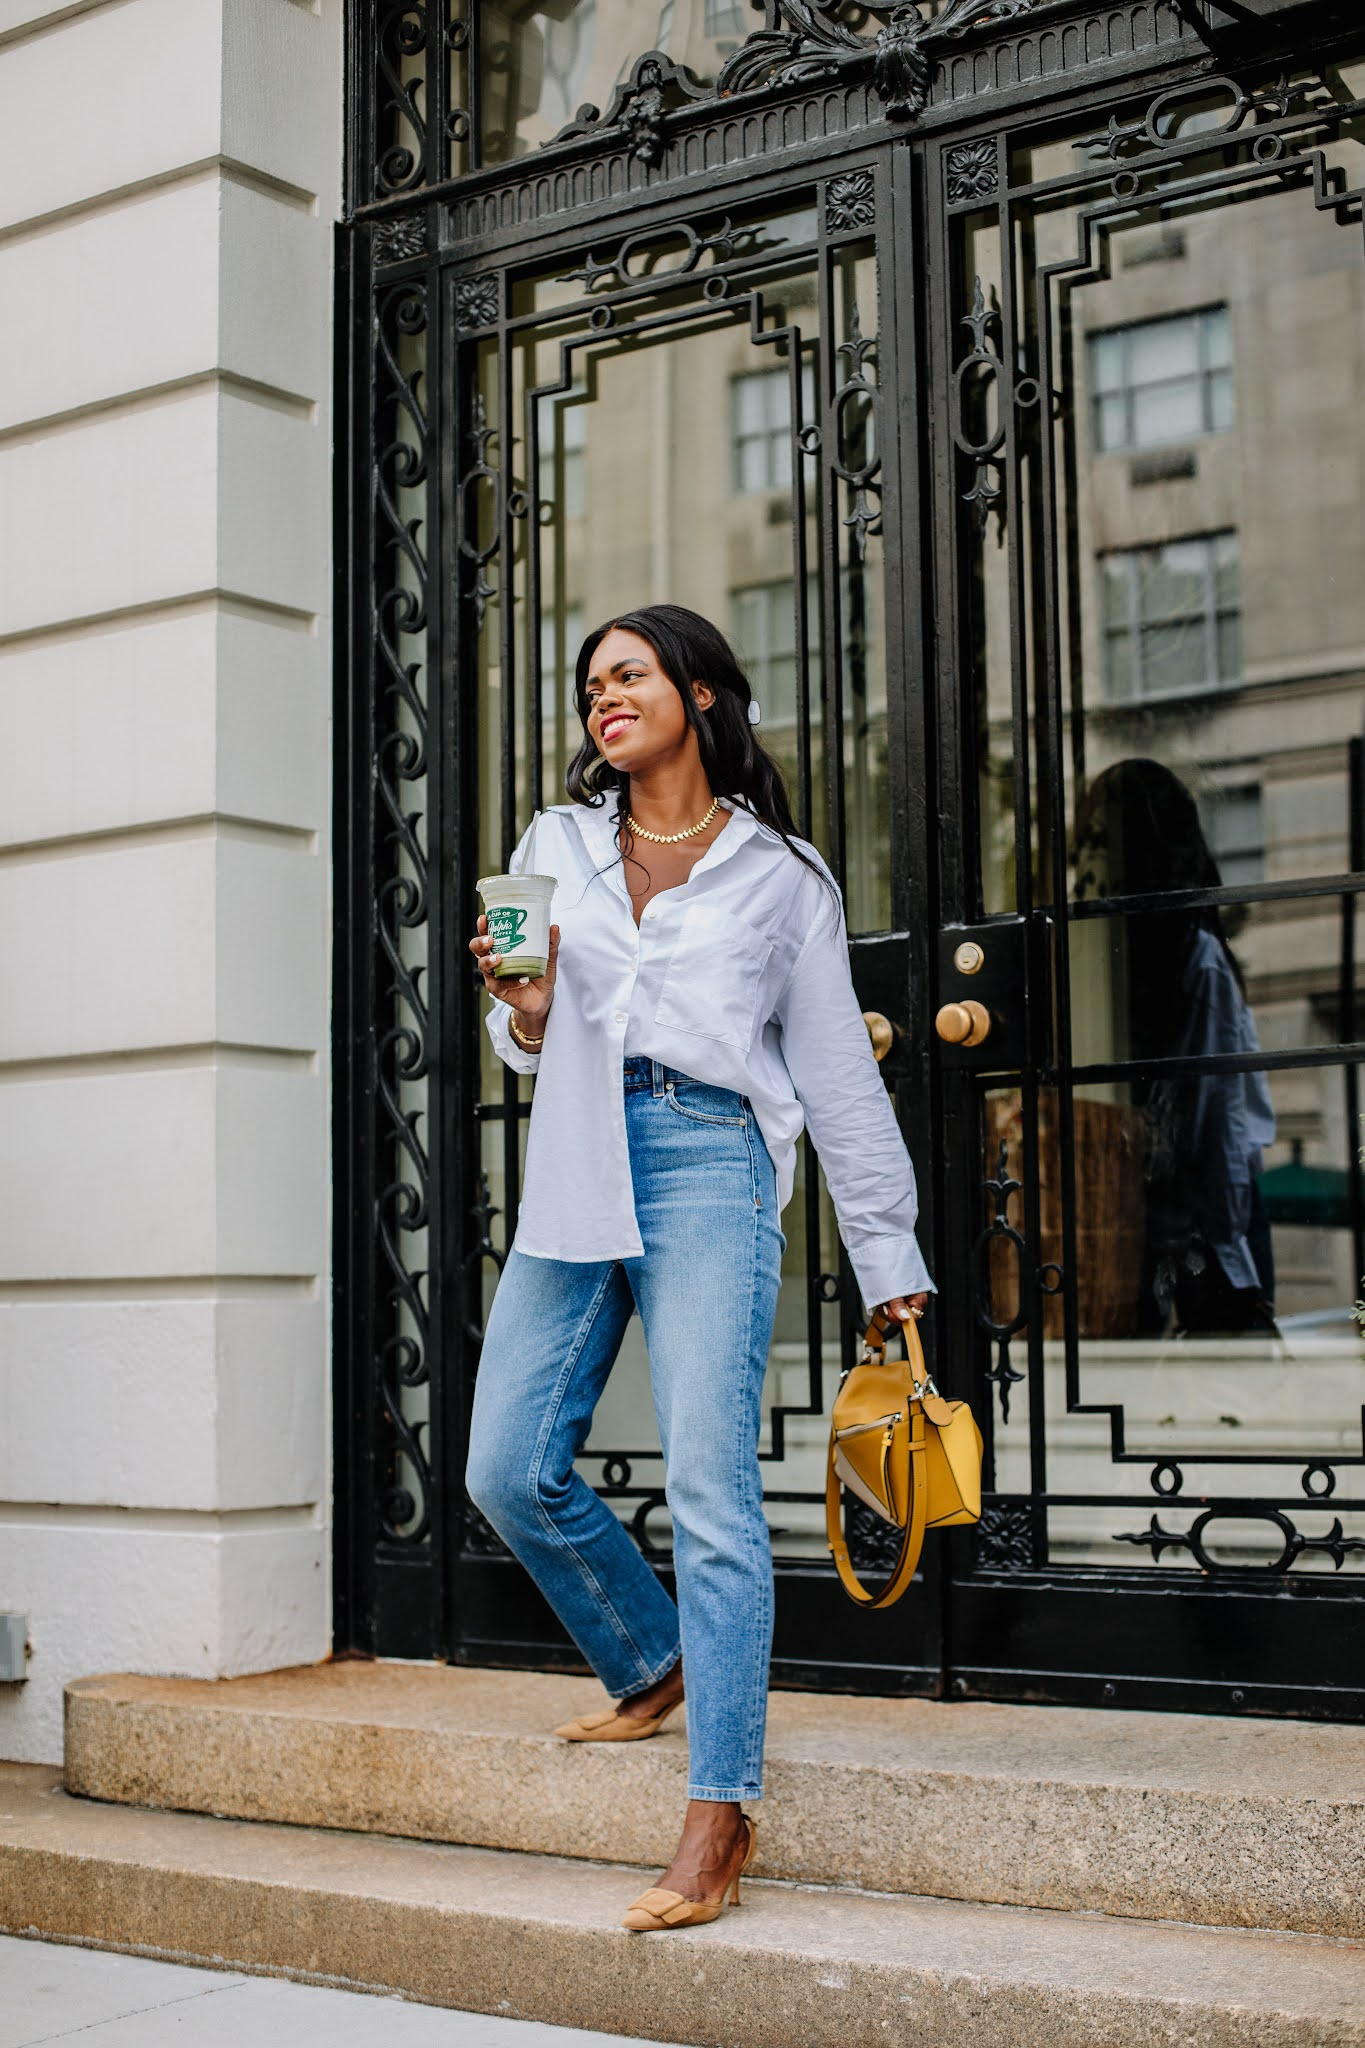 How I Finally Found The Perfect Pair of Jeans